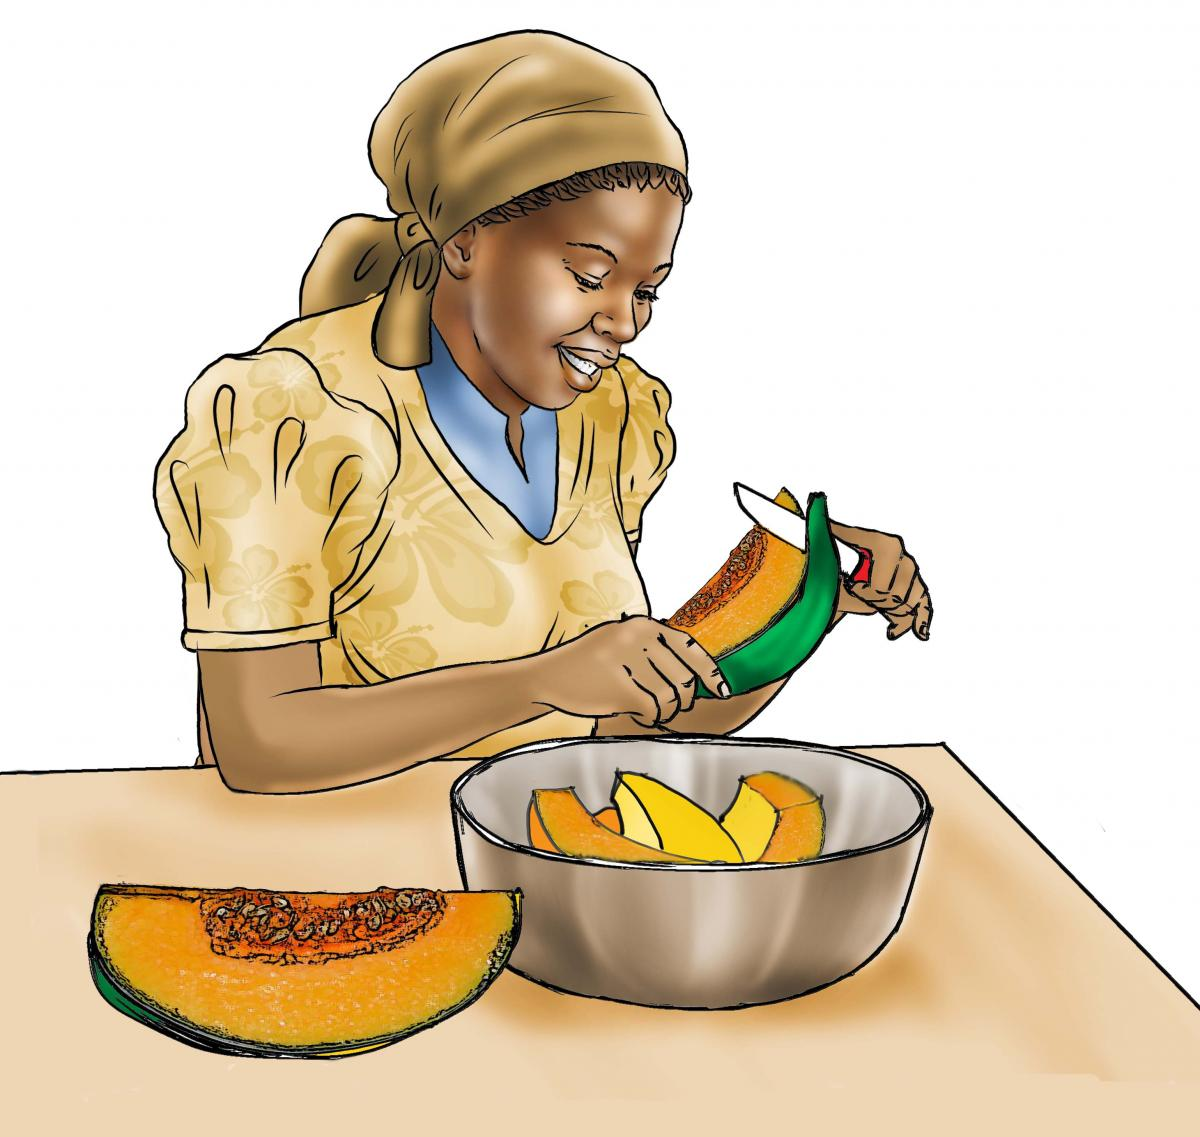 Complementary Feeding - Mother preparing vitamin a food - 01A - Sierra Leone